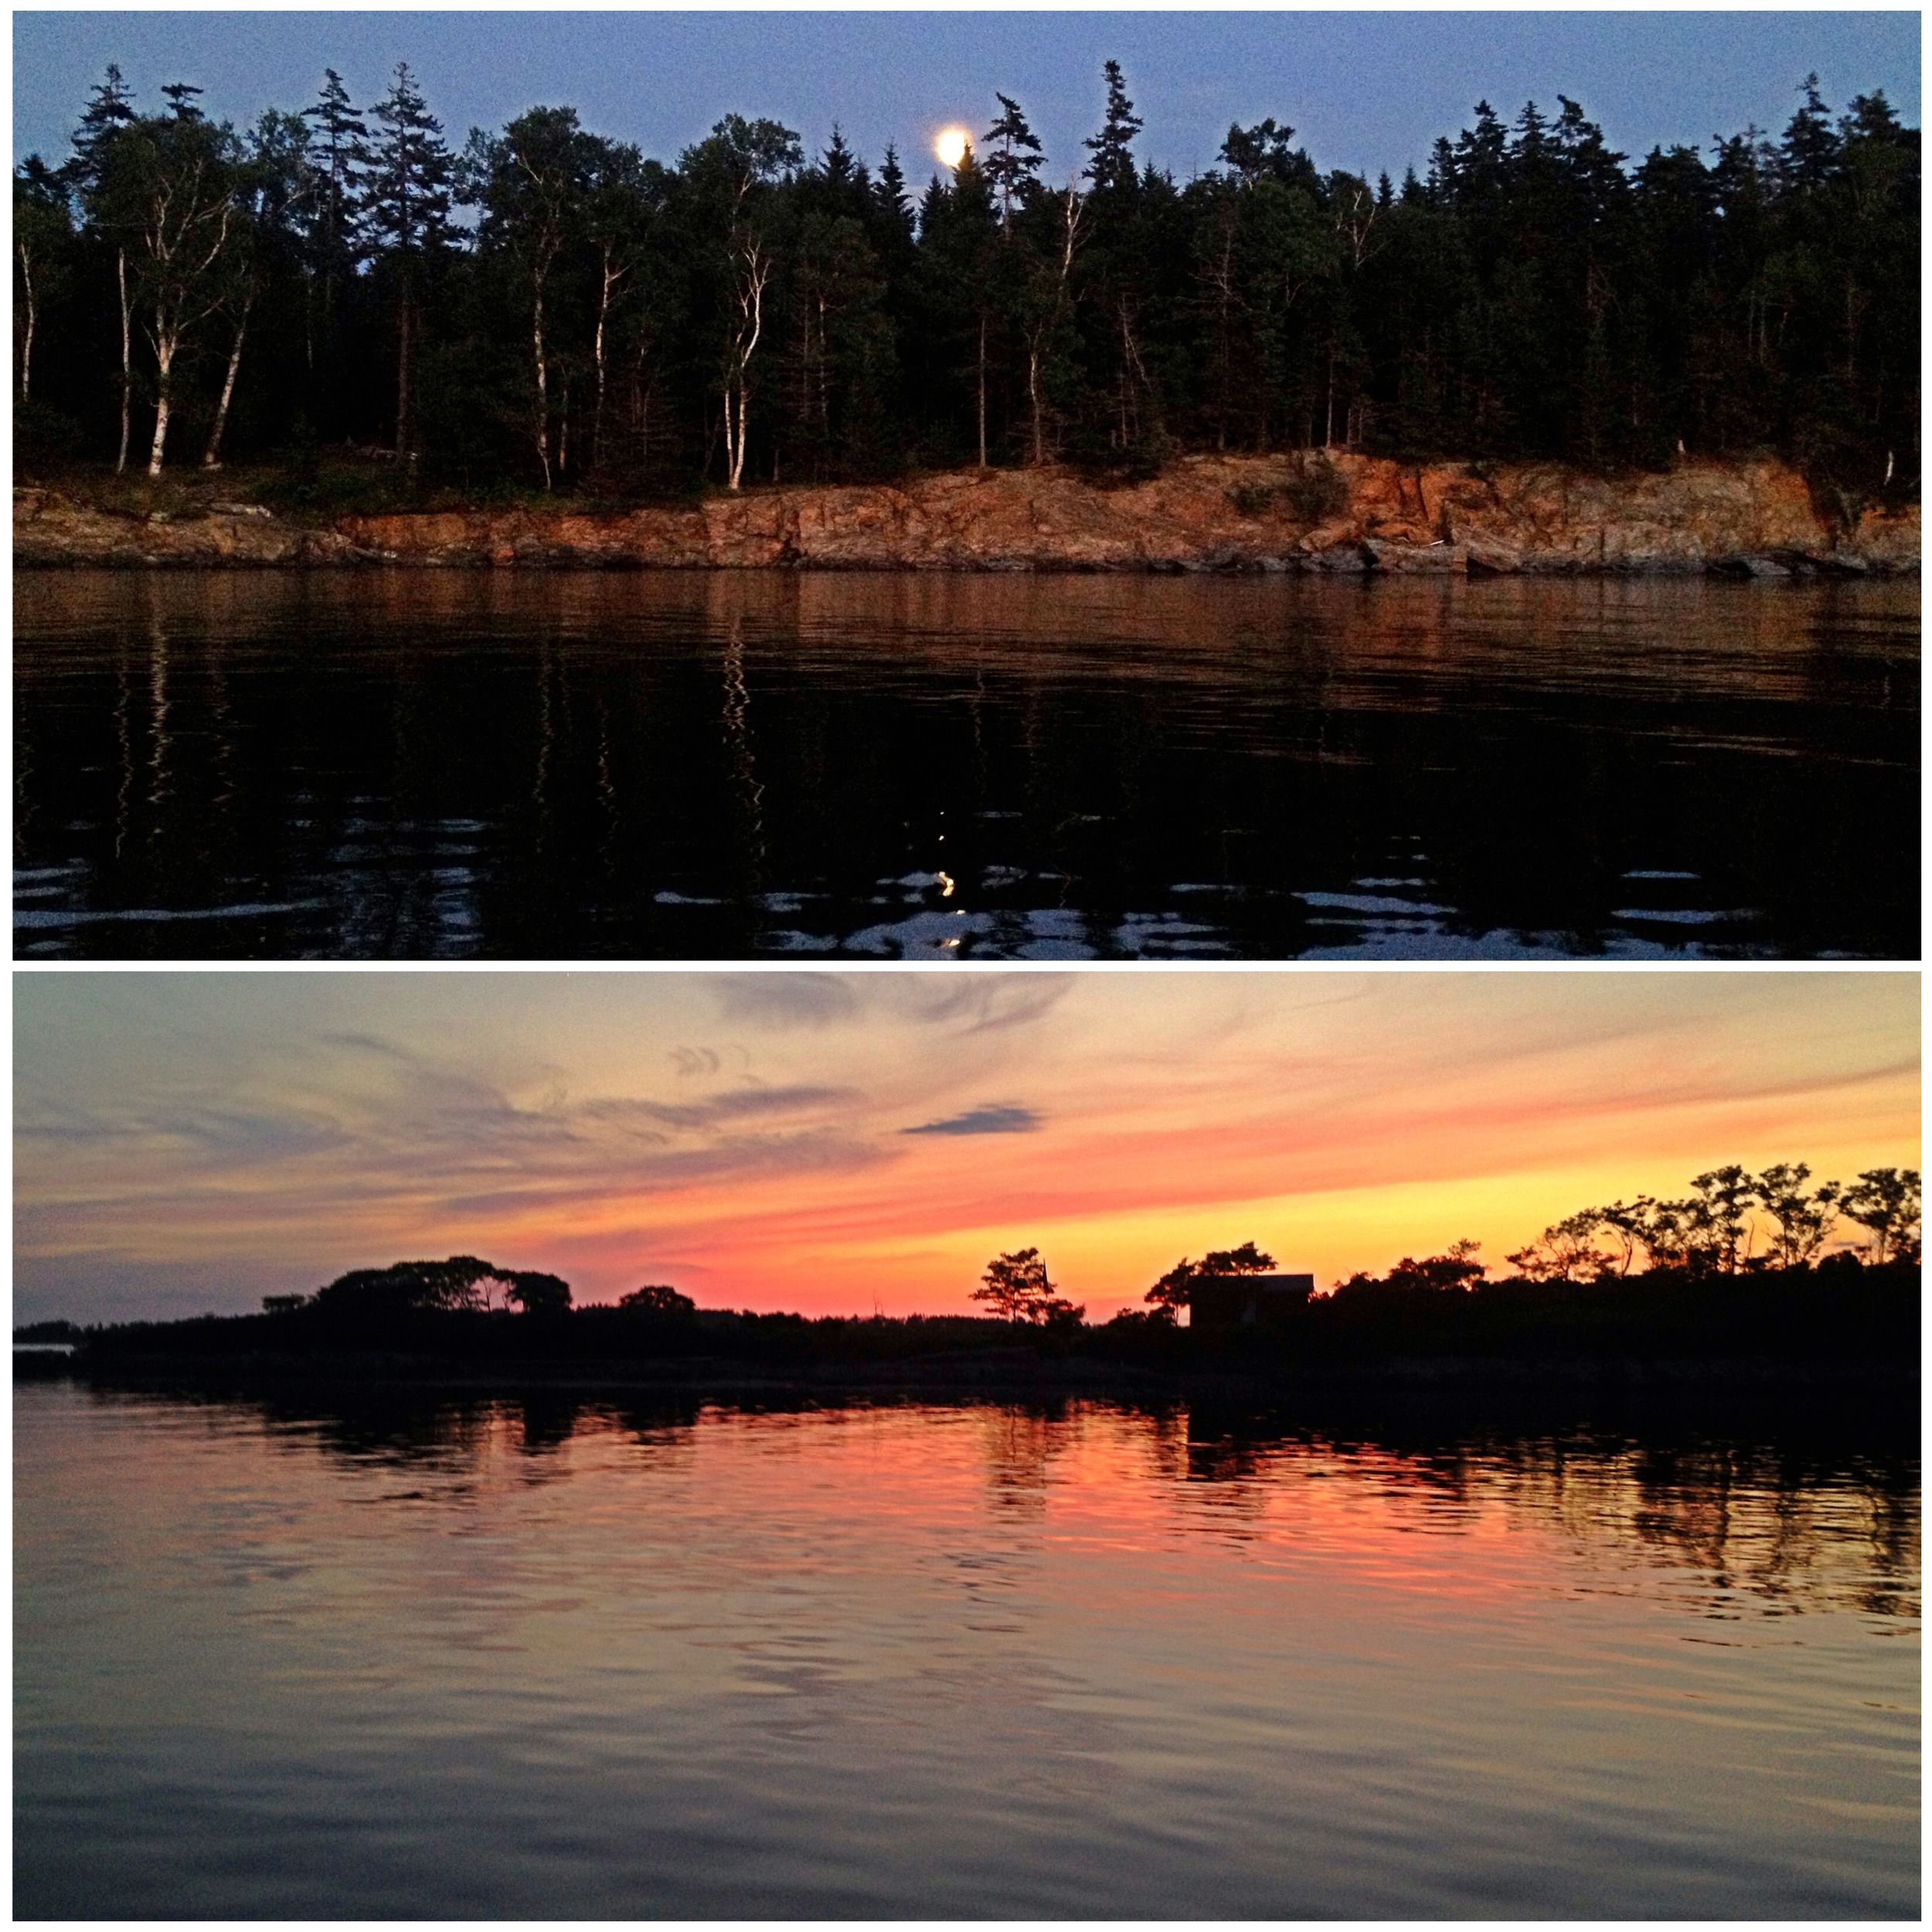 Full moon rising in the east & sunsetting in the west.